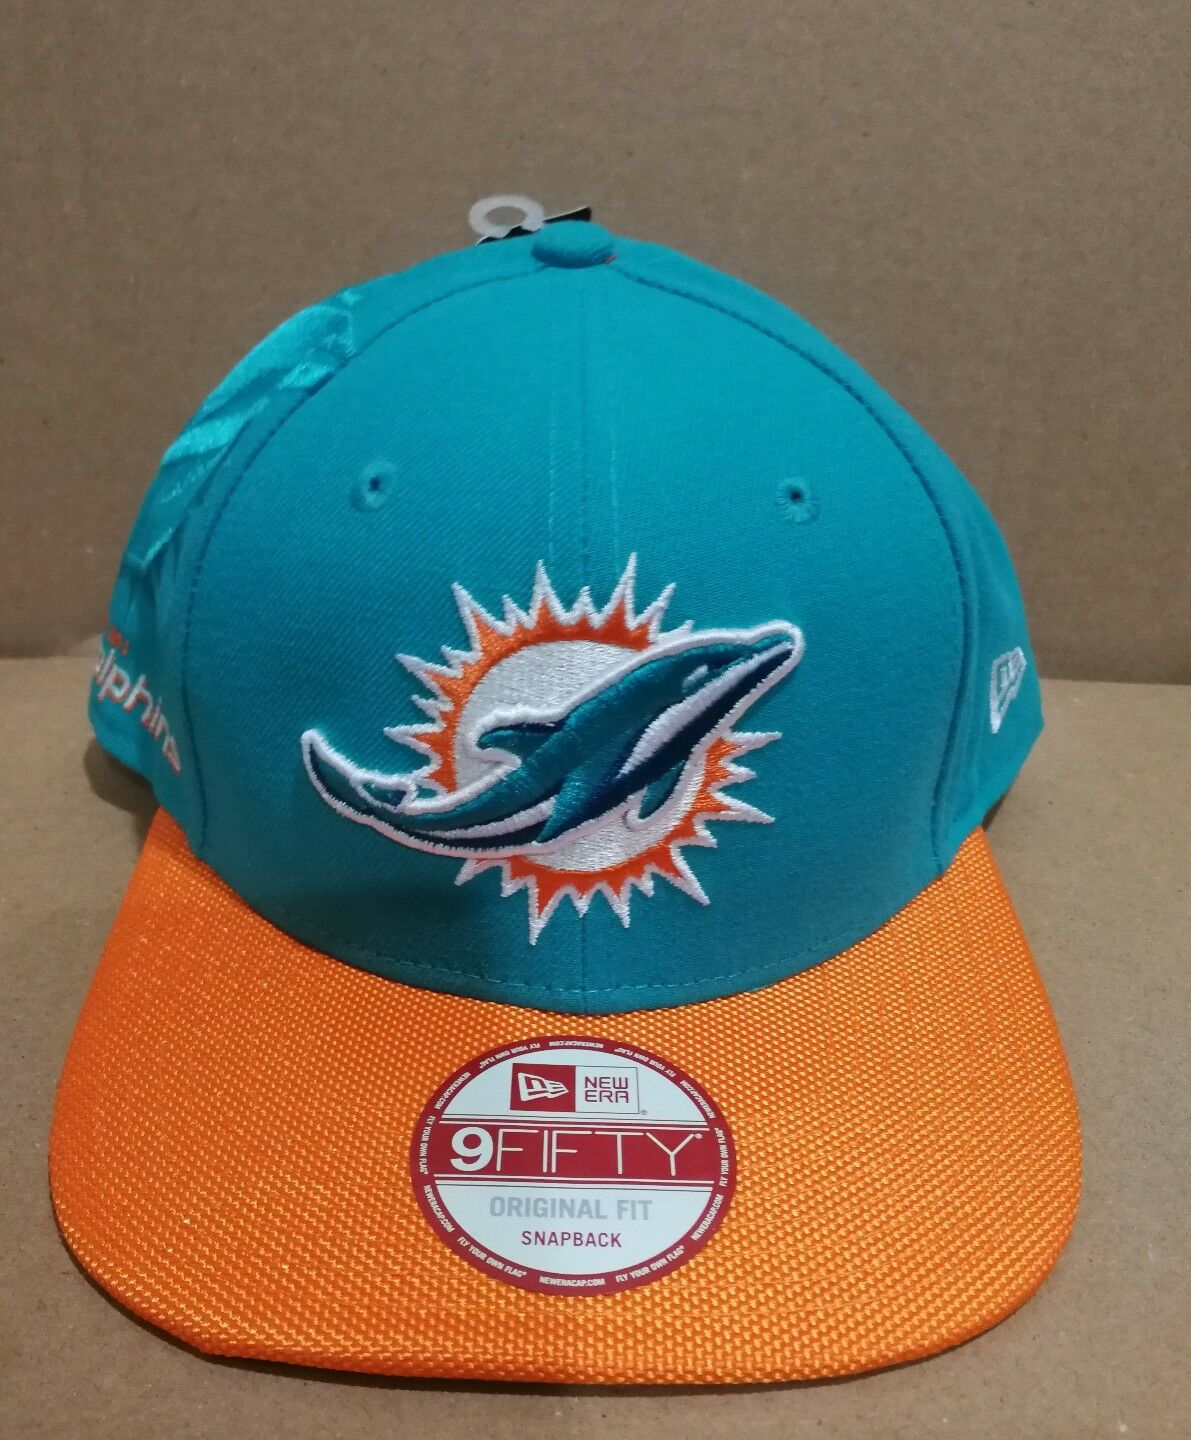 New Era Miami Dolphins 9Fifty Snapback Authentic Authentic Authentic Hat Cap NFL f0ae38